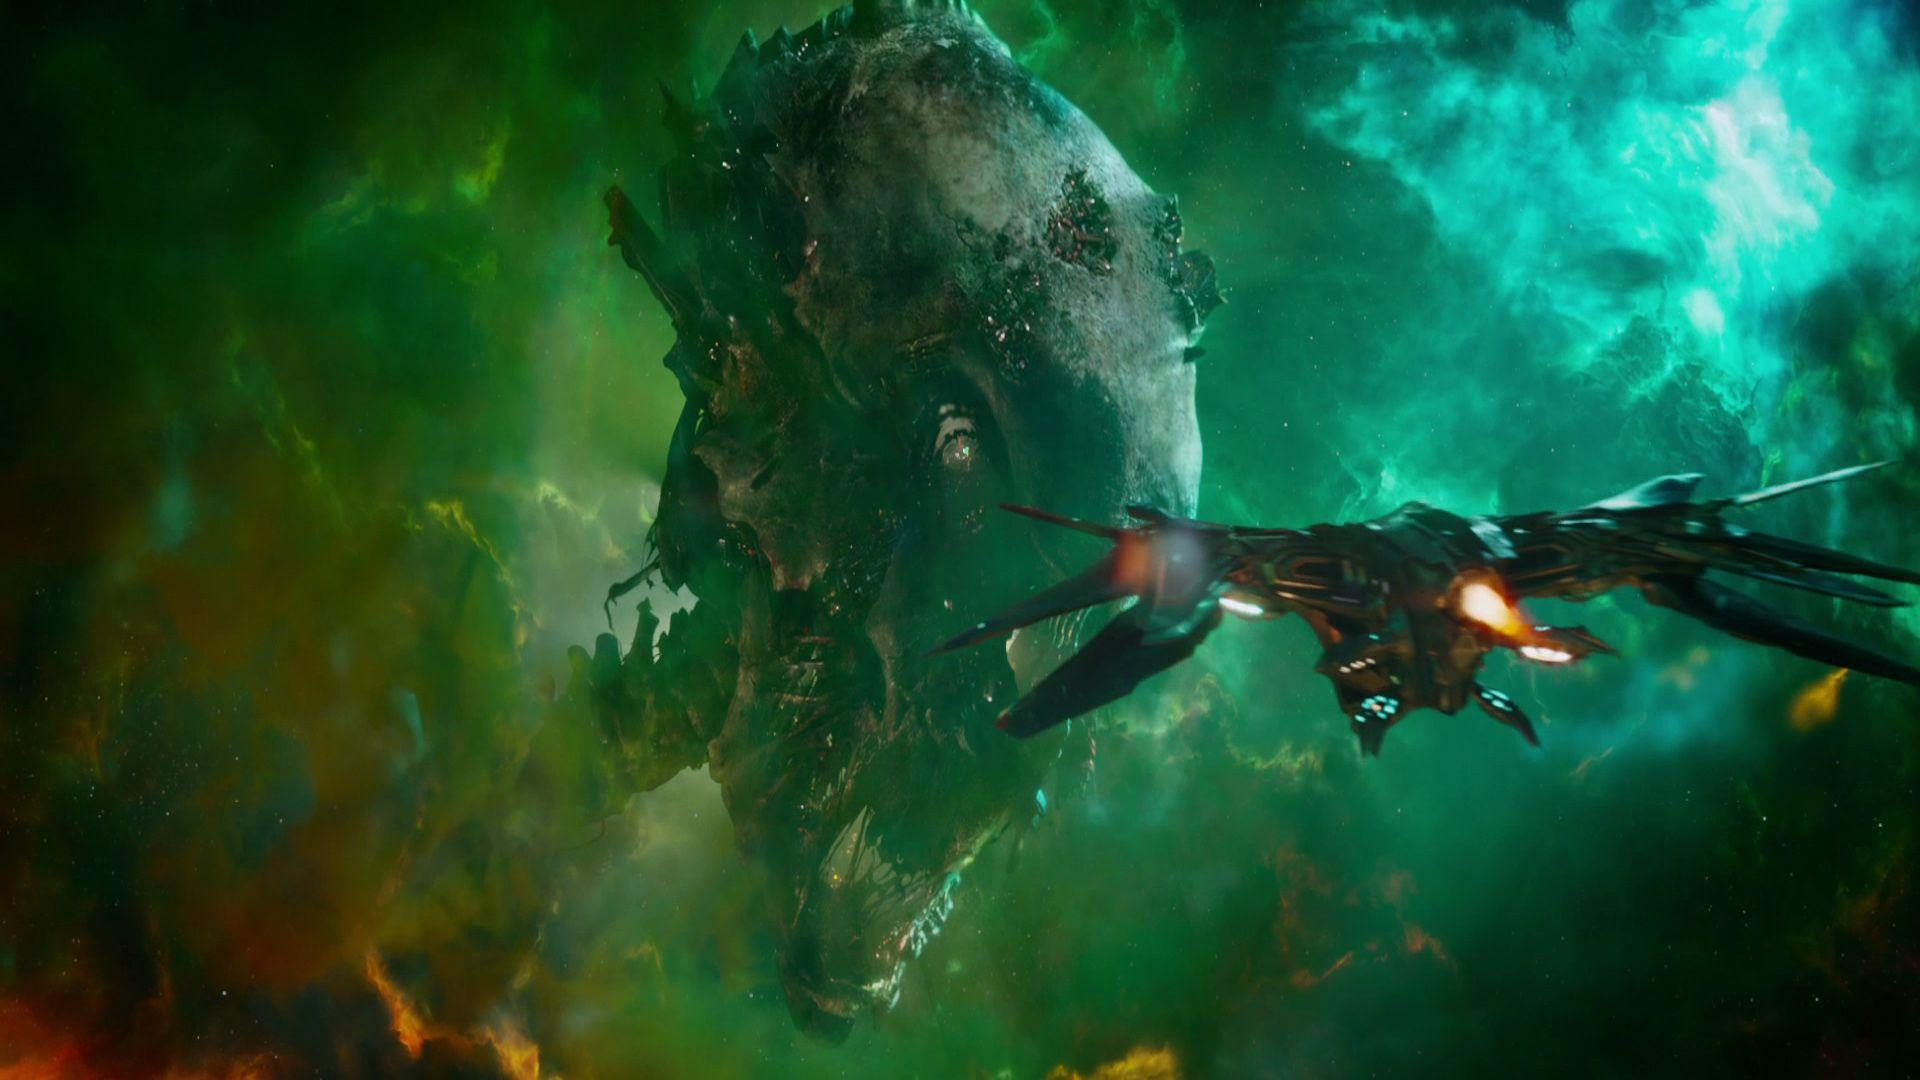 Guardians Of The Galaxy Space wallpapers – wallpapers free download